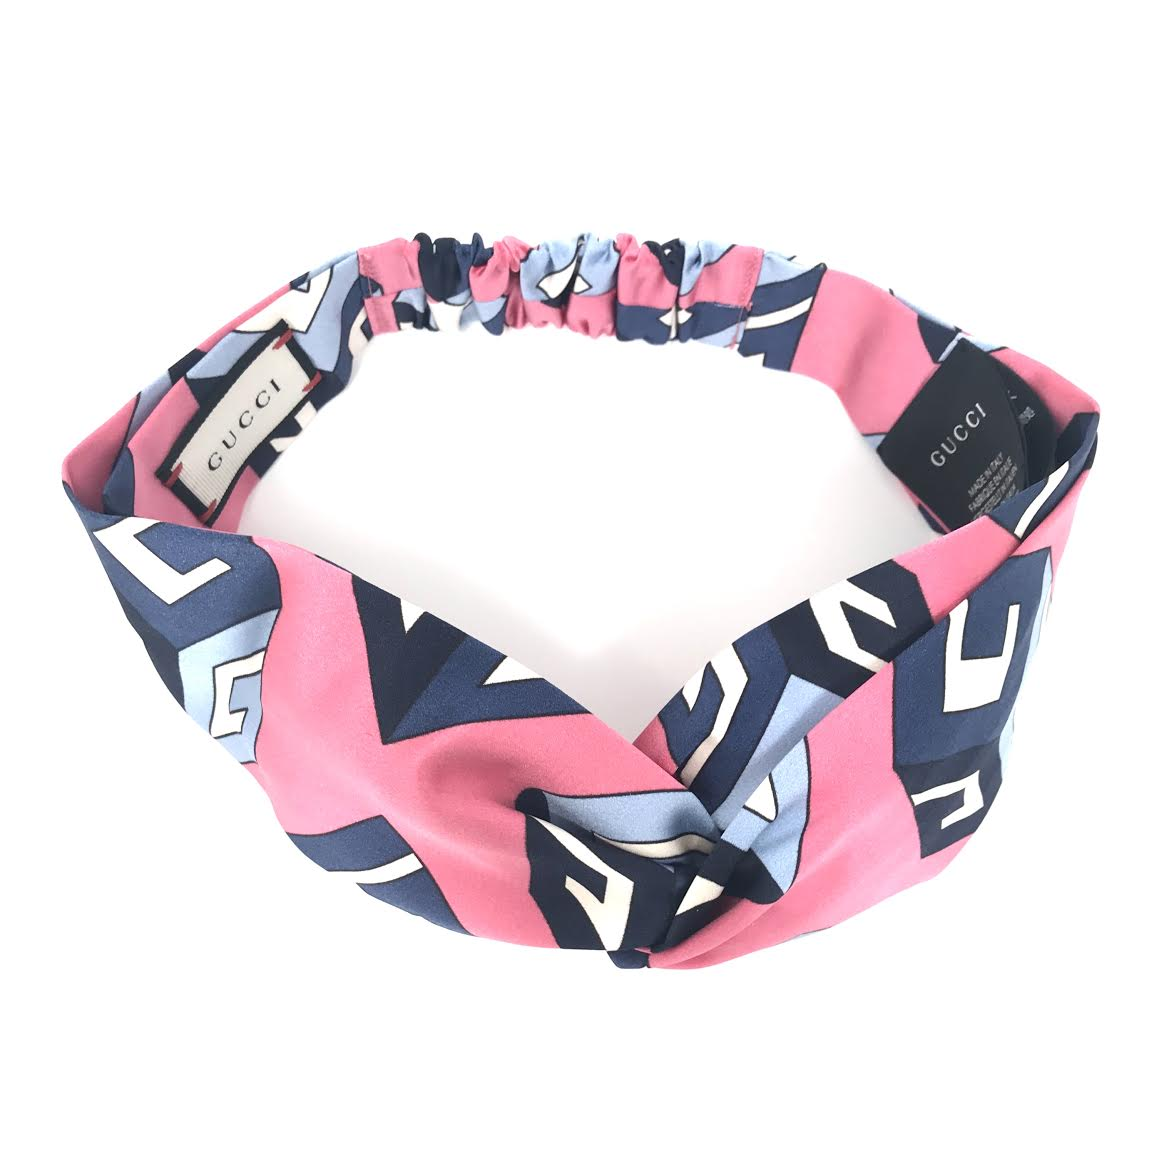 5ec32ec72a377 Gucci Silk Wallpaper Headband in Pink w/ Tags